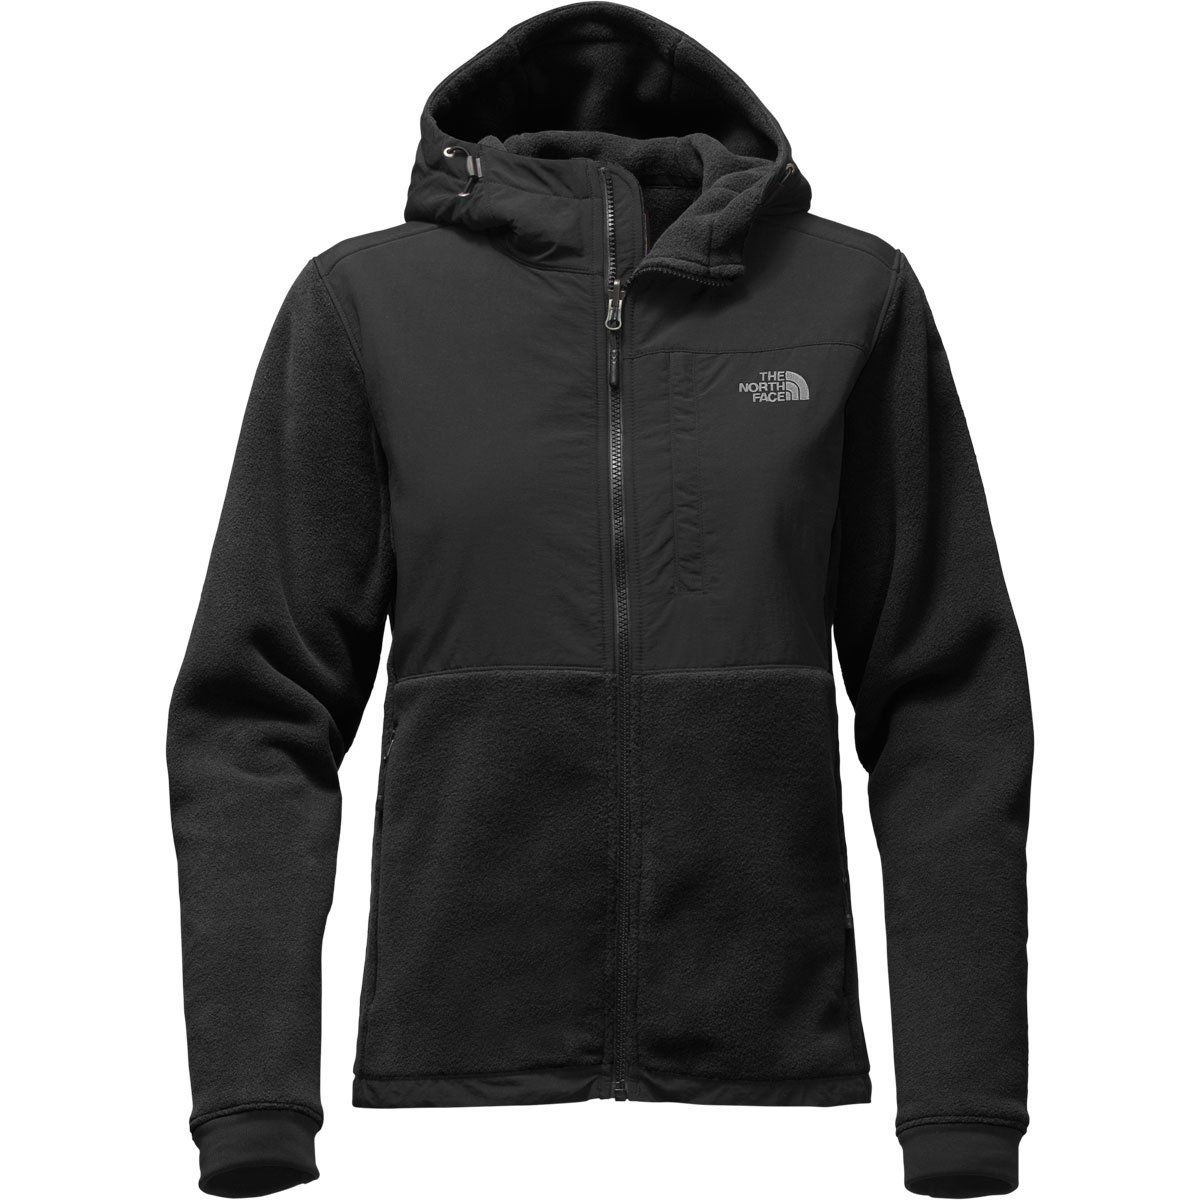 The North Face Denali Hoodie Jacket - Women's TNF Black/TNF Black Medium by The North Face